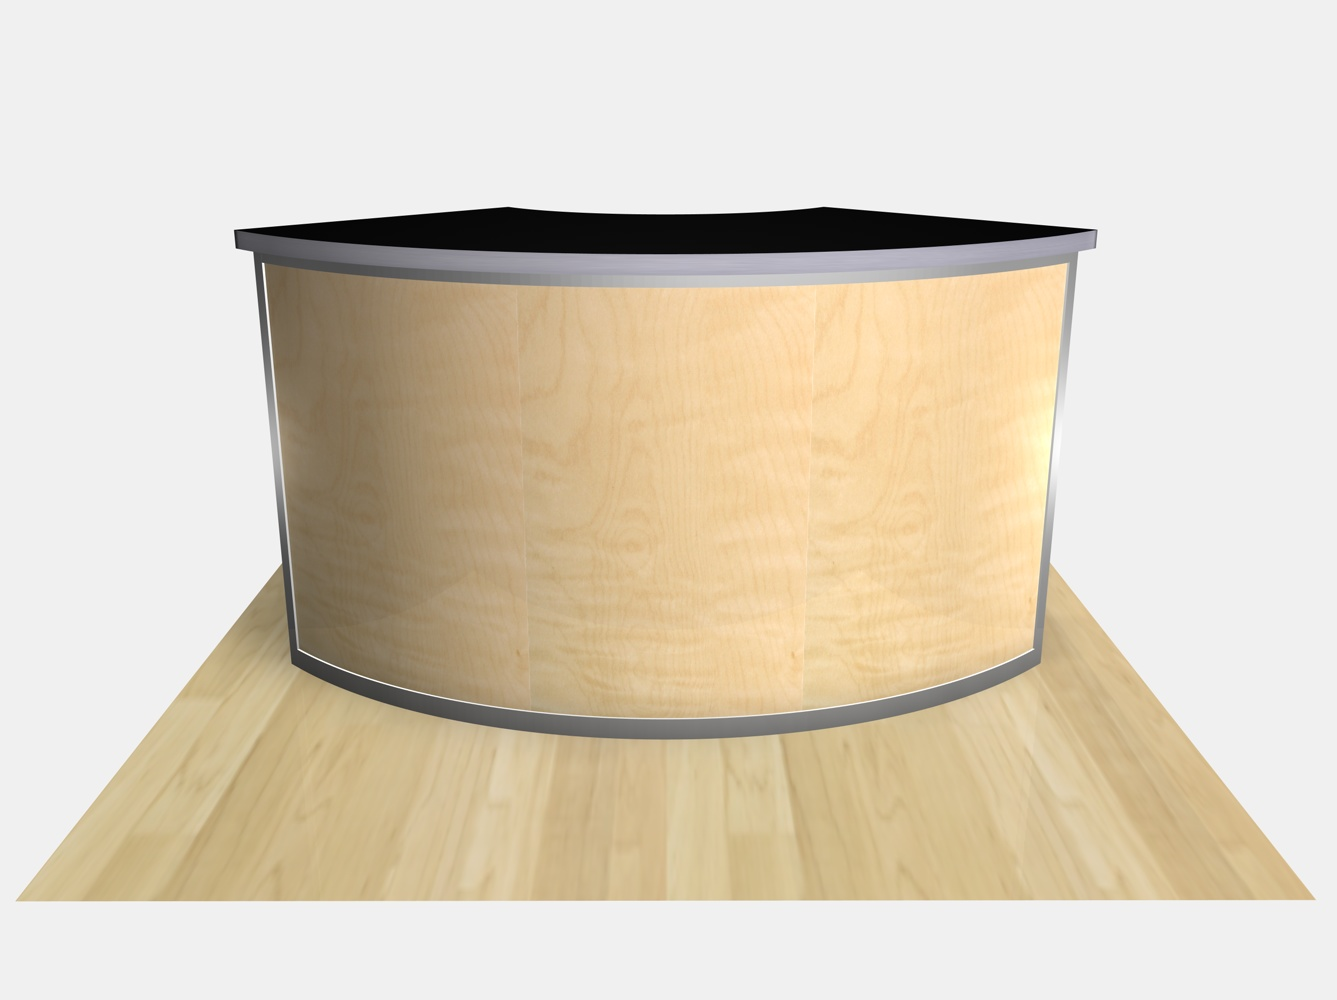 RE-1205 / Large Curved Counter - Image 3